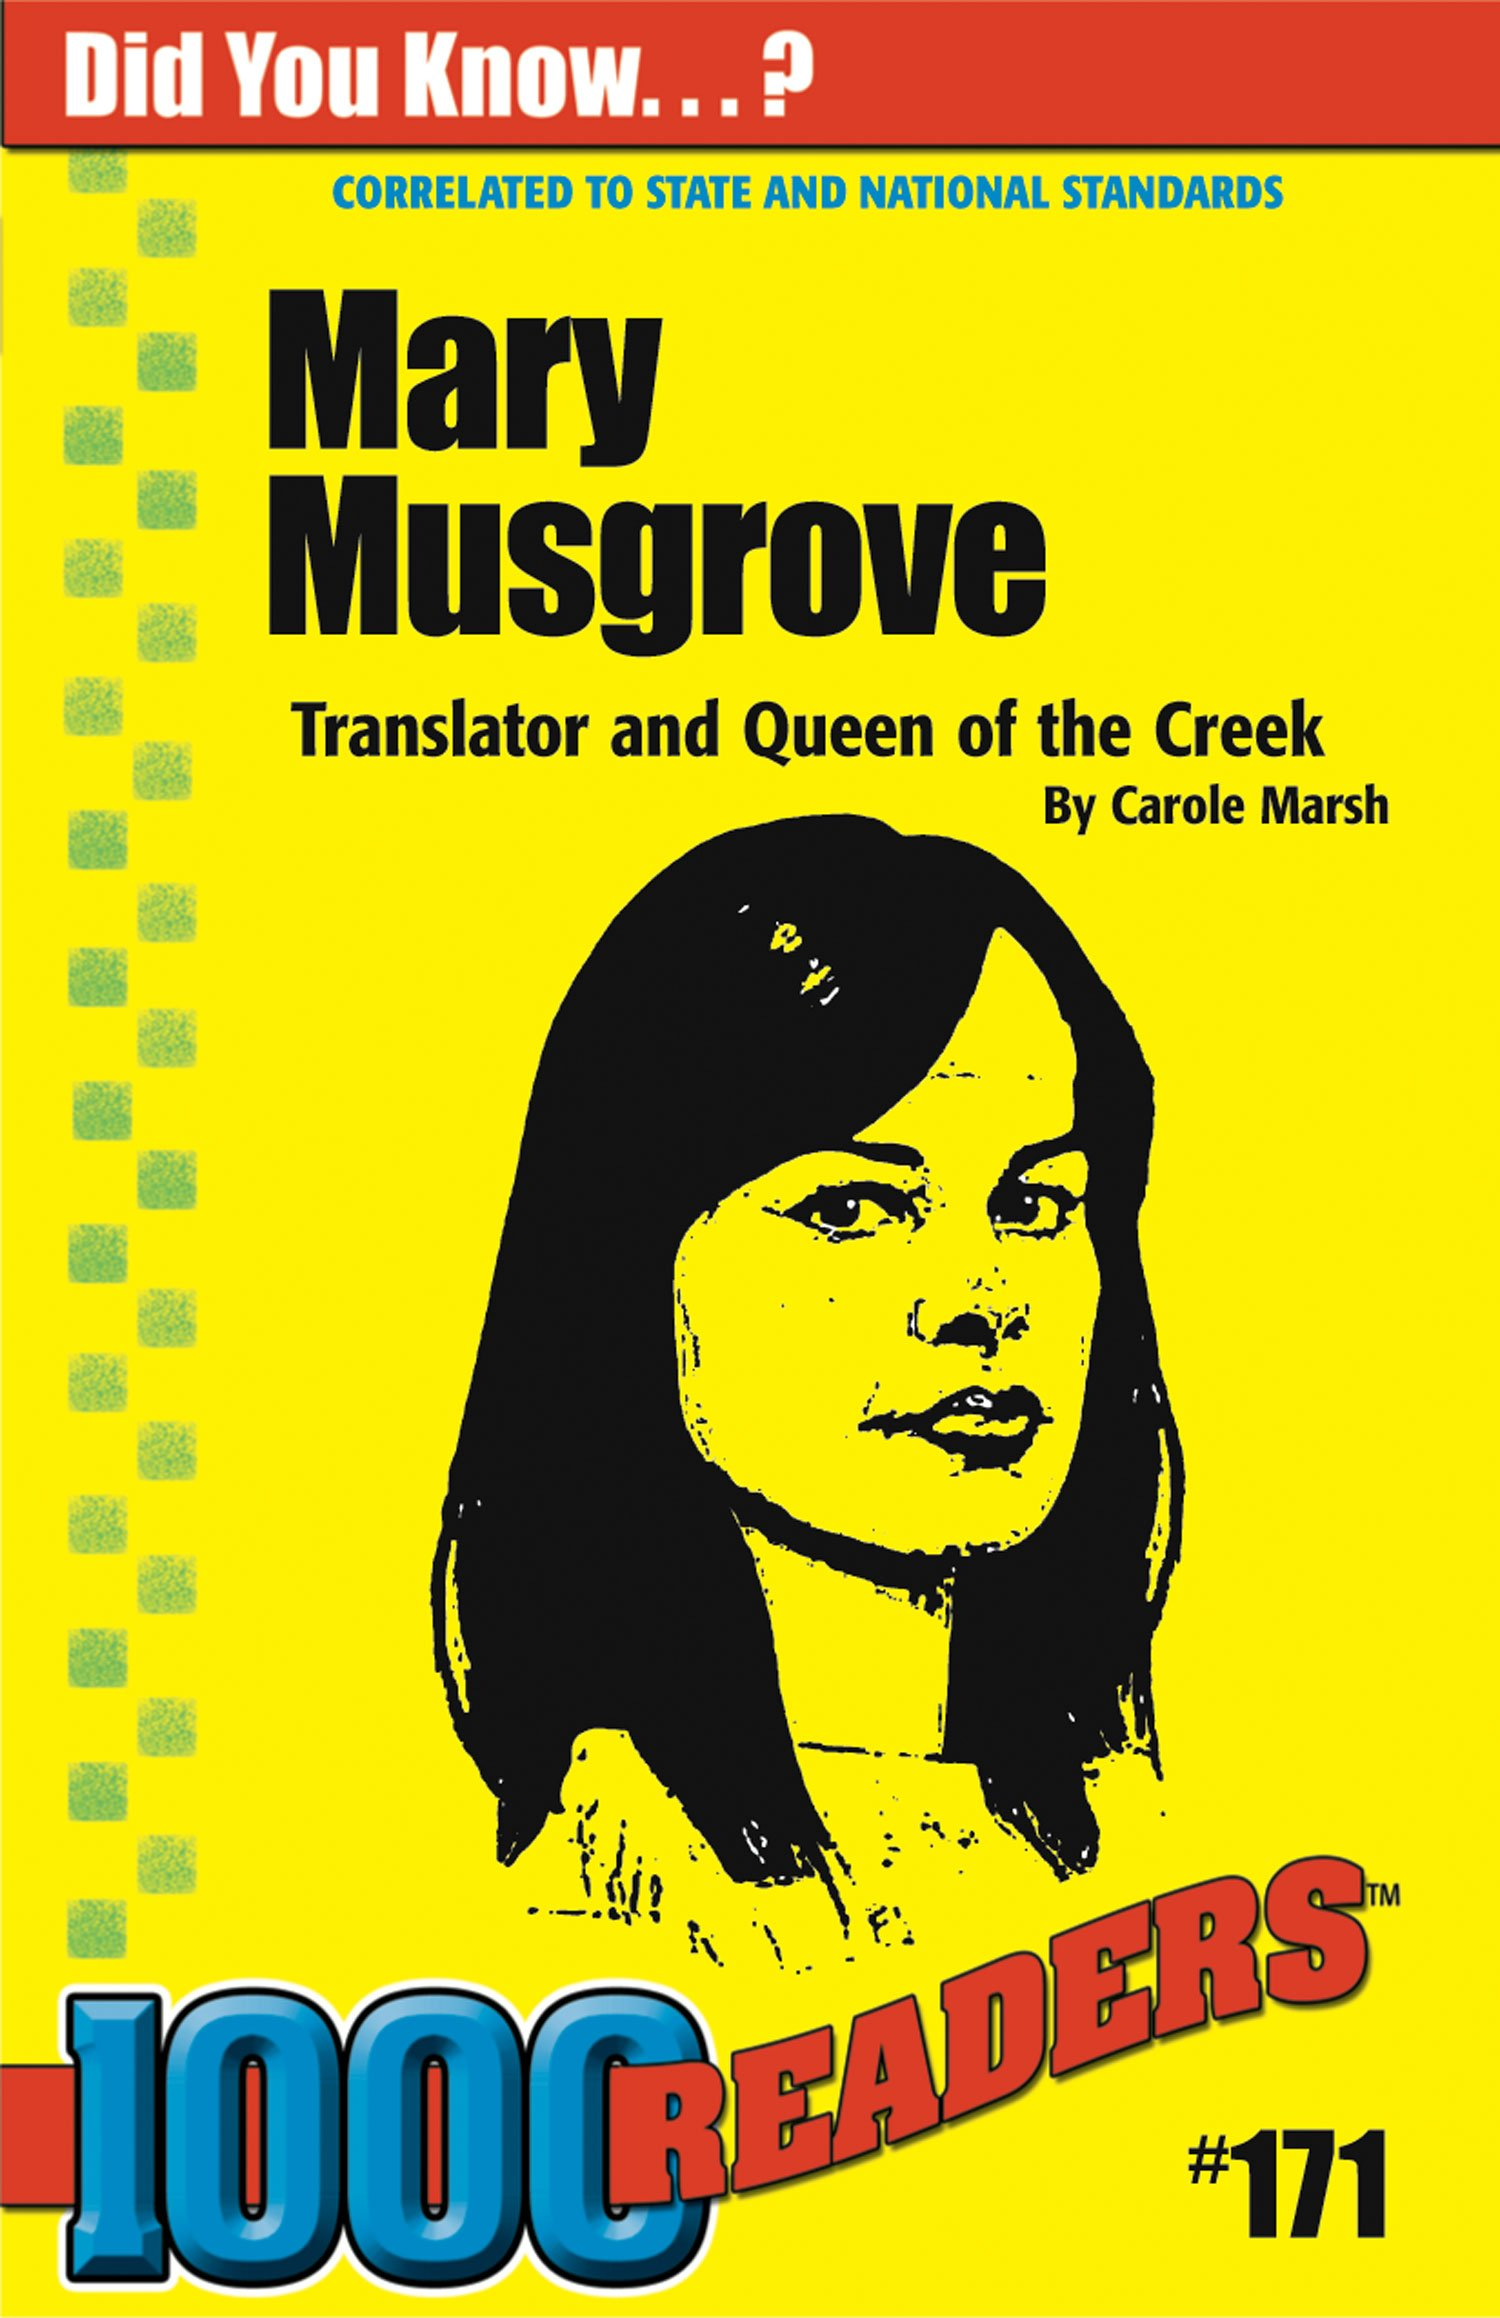 Download Mary Musgrove: Translator and Queen of the Creek (171) (1000 Readers) ebook